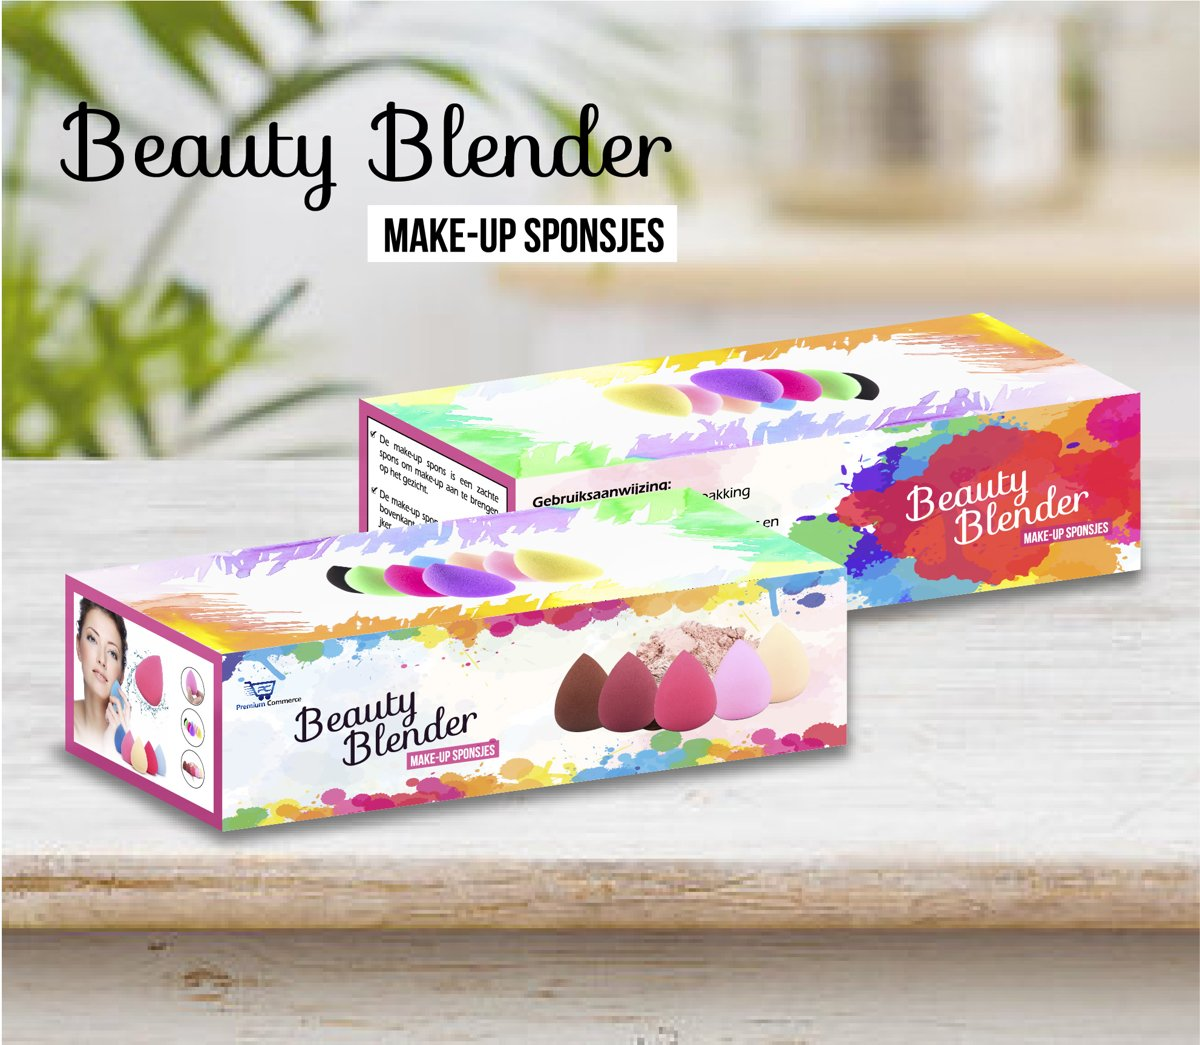 (10 stuks) Make Up Spons - Gezicht Sponsje - Foundation Blender - Beauty Blender - Poeder - Make-Up + Gratis Spons Met Platte Kant